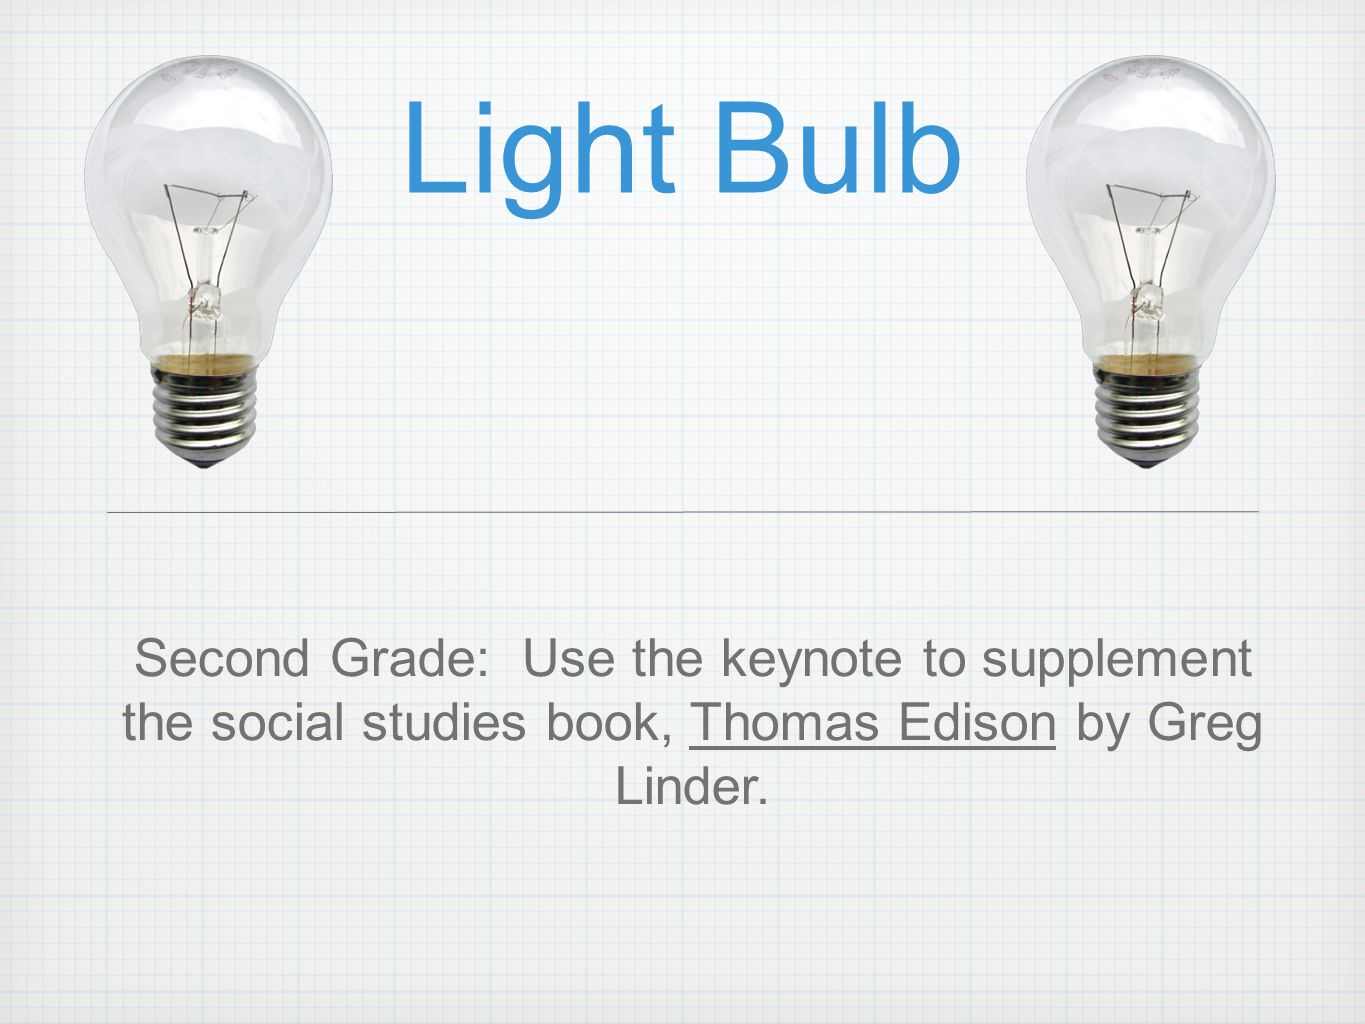 Light Bulb Second Grade: Use the keynote to supplement the social studies book, Thomas Edison by Greg Linder.